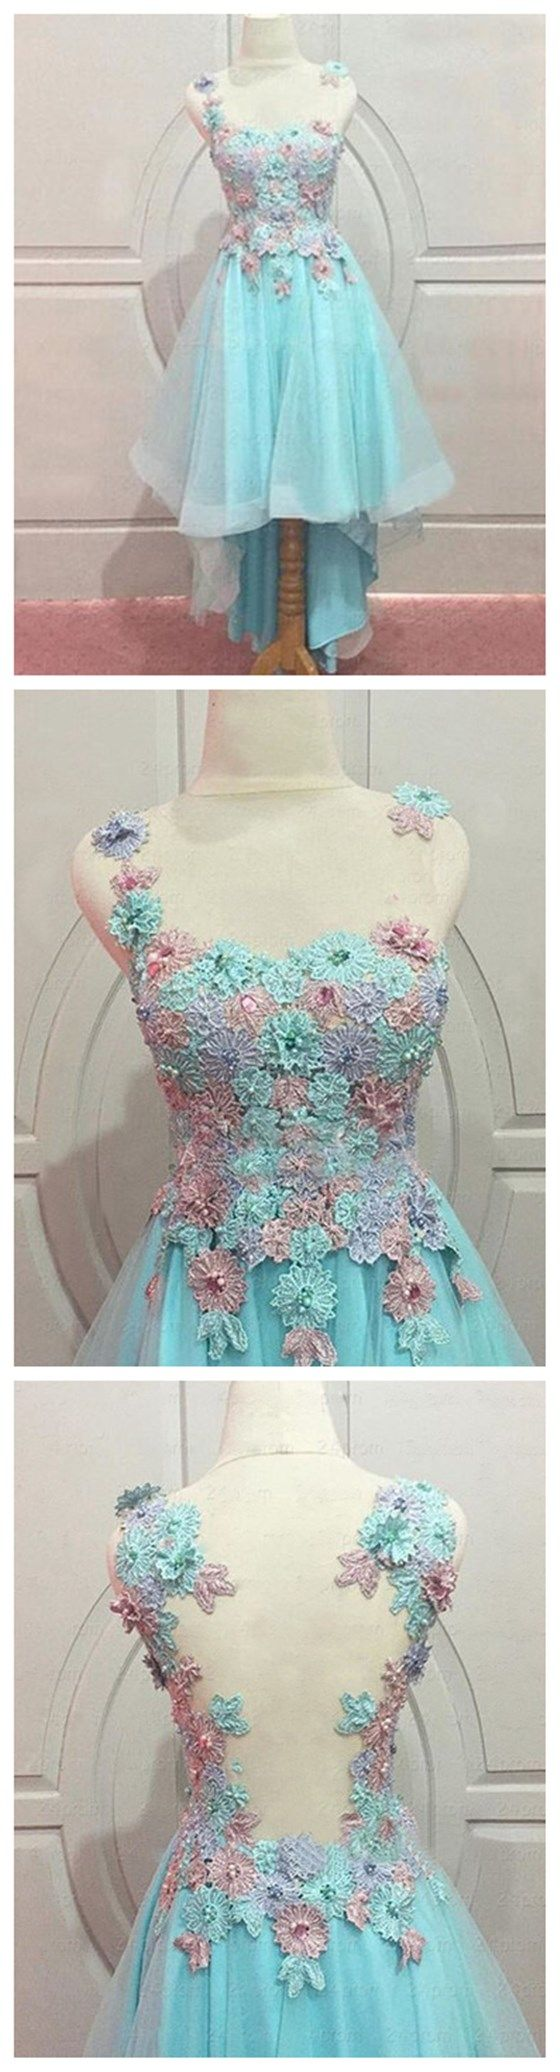 Lace prom dress blue prom dress j homecoming dress pinterest